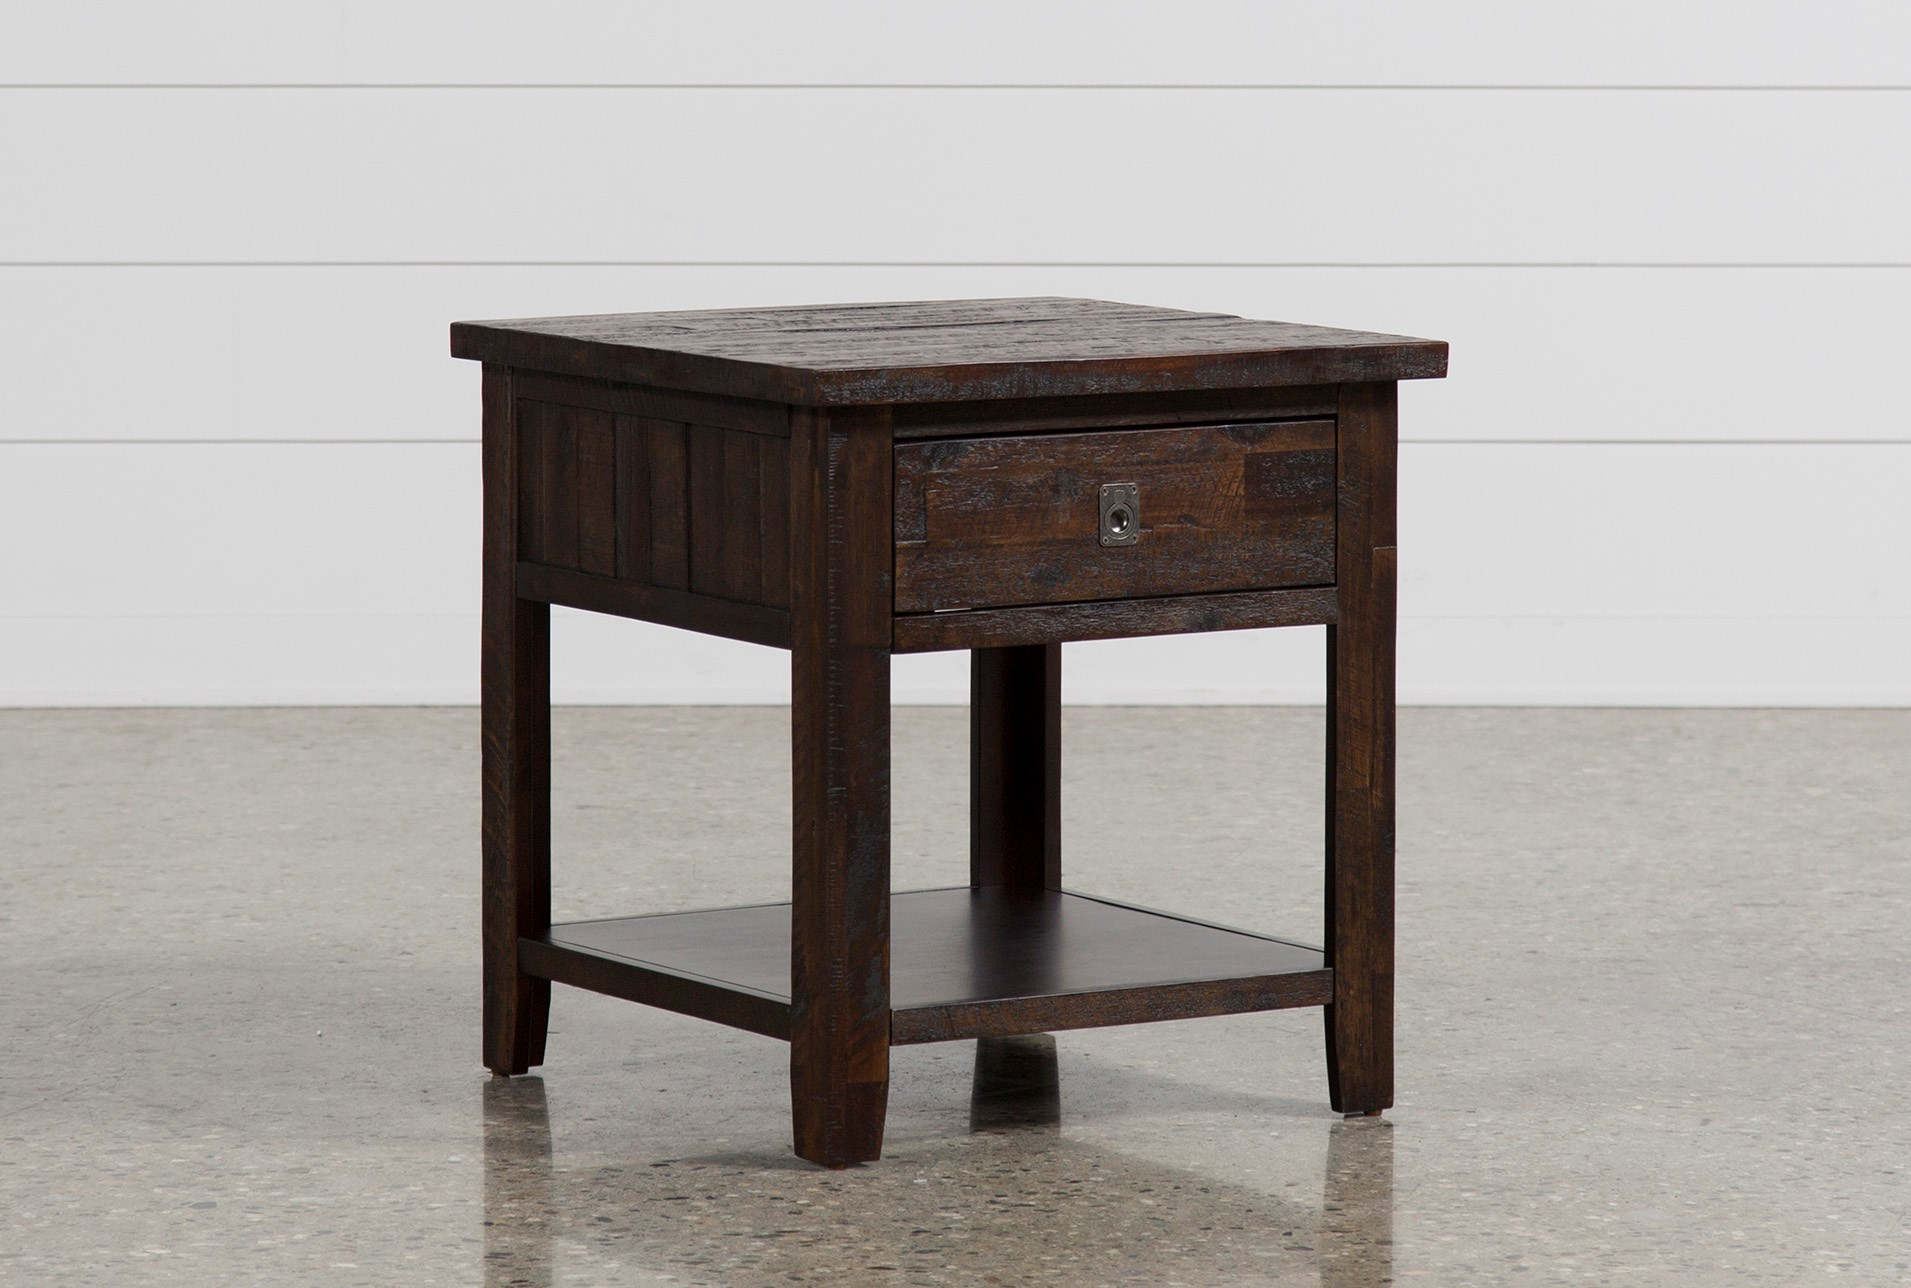 Palmer Square End Table Qty 1 Has Been Successfully Added To Your Cart